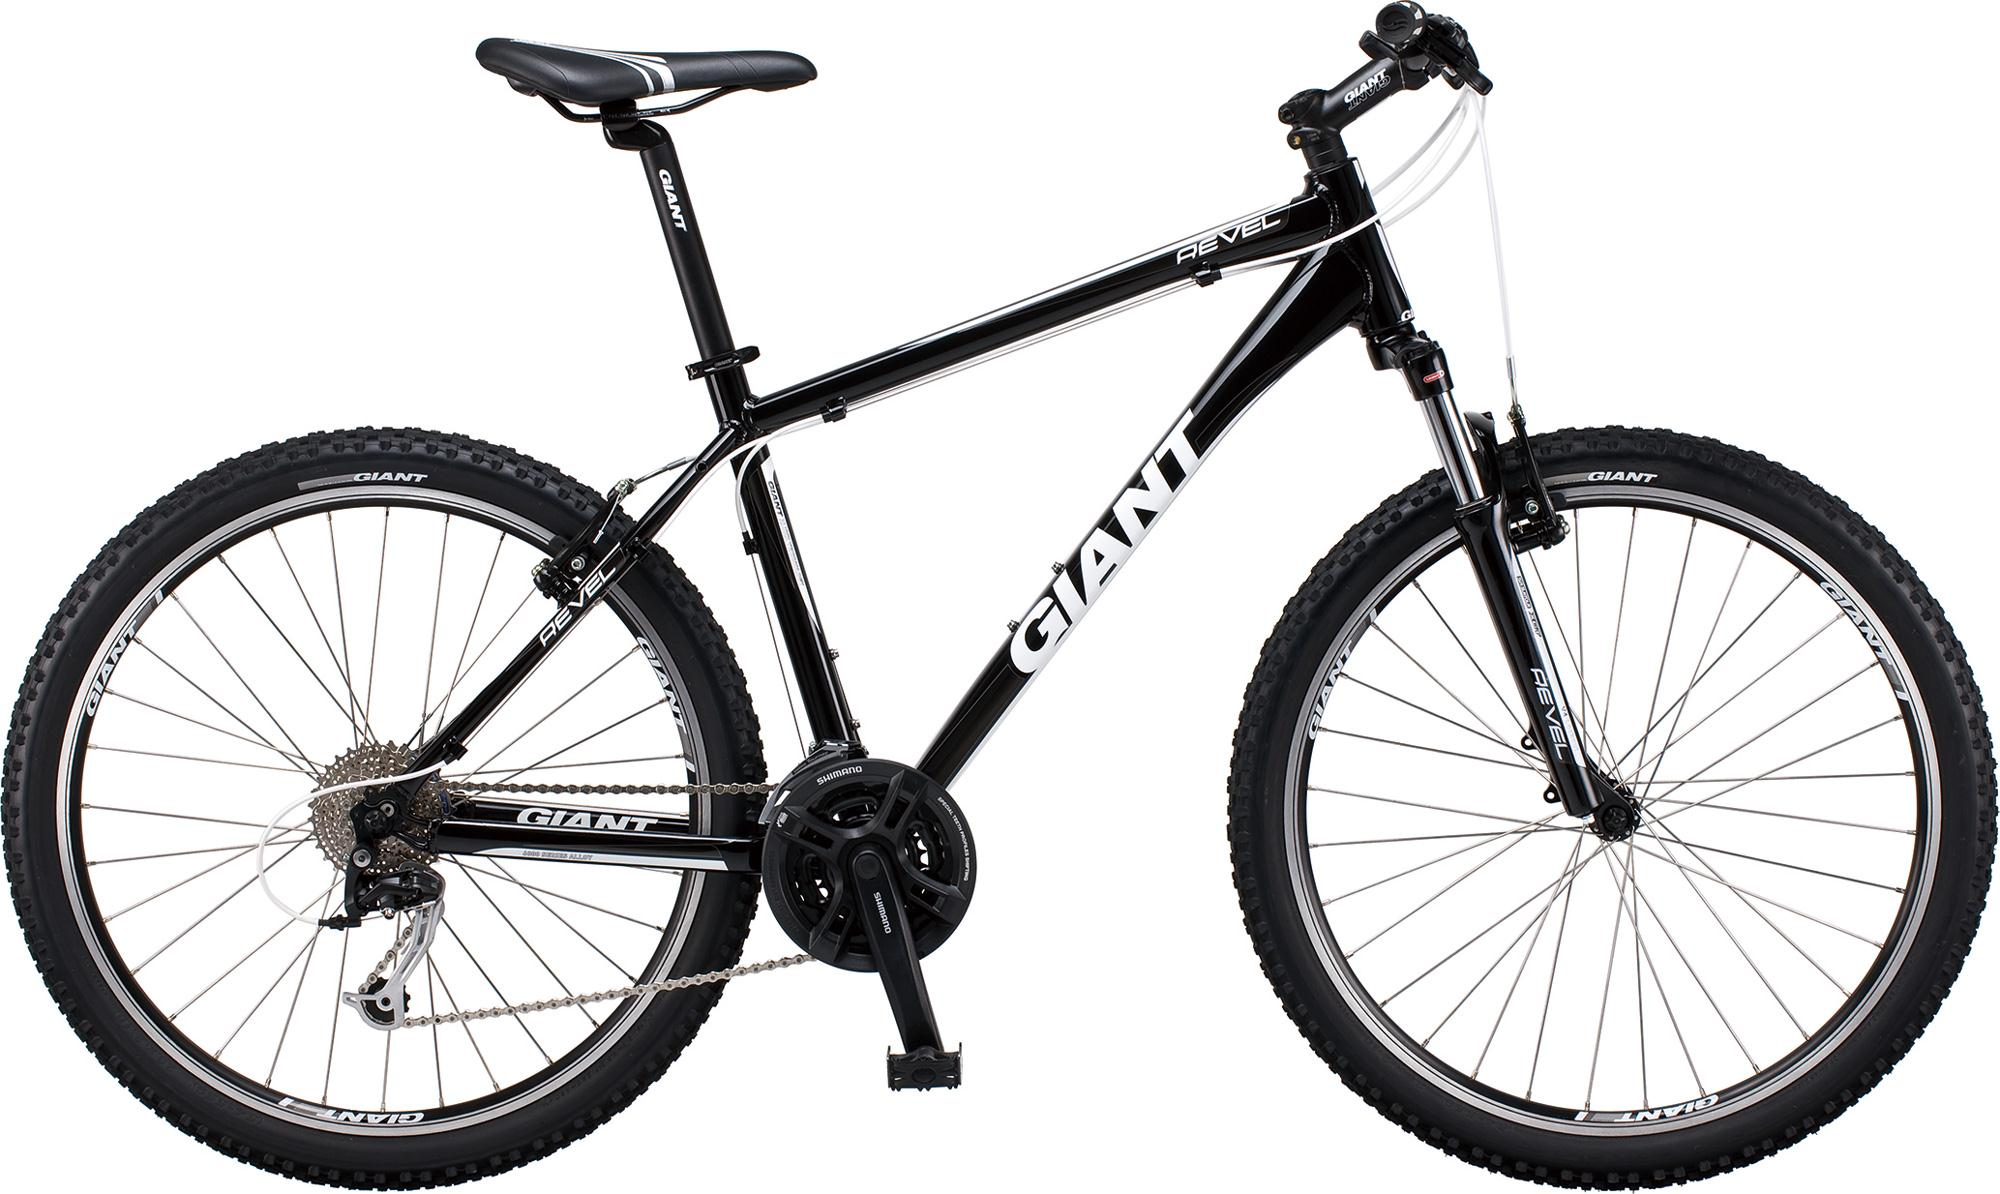 http://www.giant-bicycles.com/_generated/_generated_ru/bikes/models/images/2000/2012/Revel-2.jpg